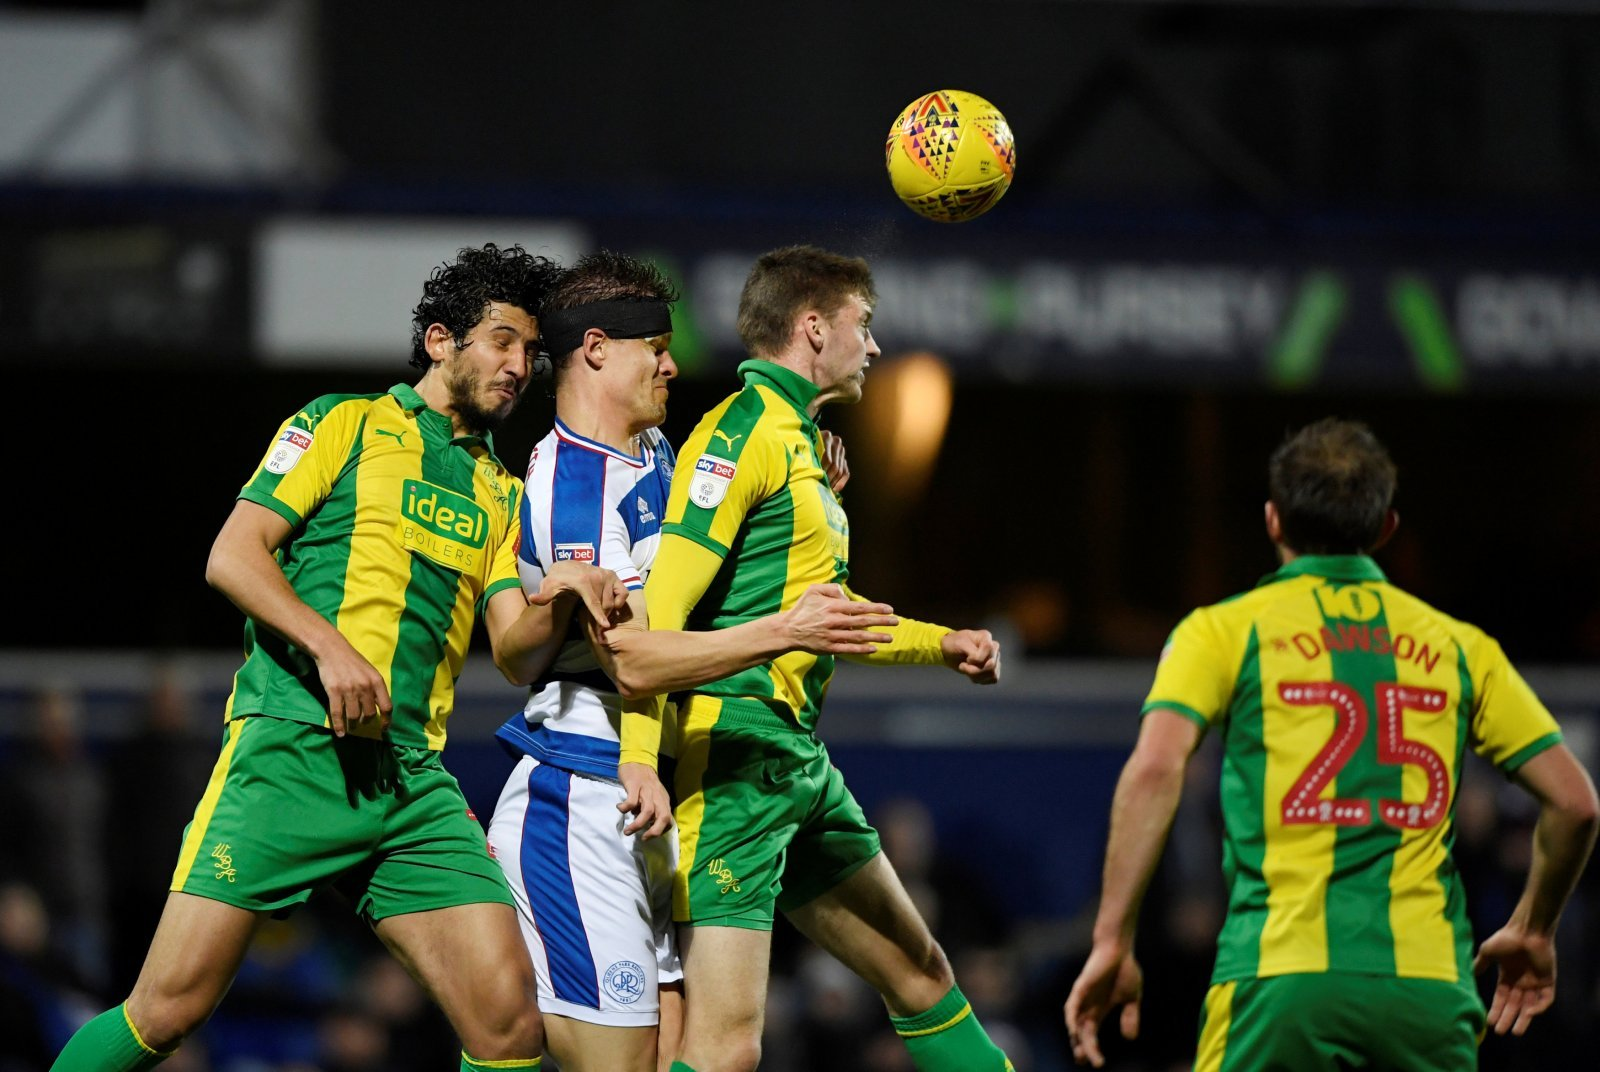 Unsung hero: Sam Field the man to thank as West Brom win at Loftus Road